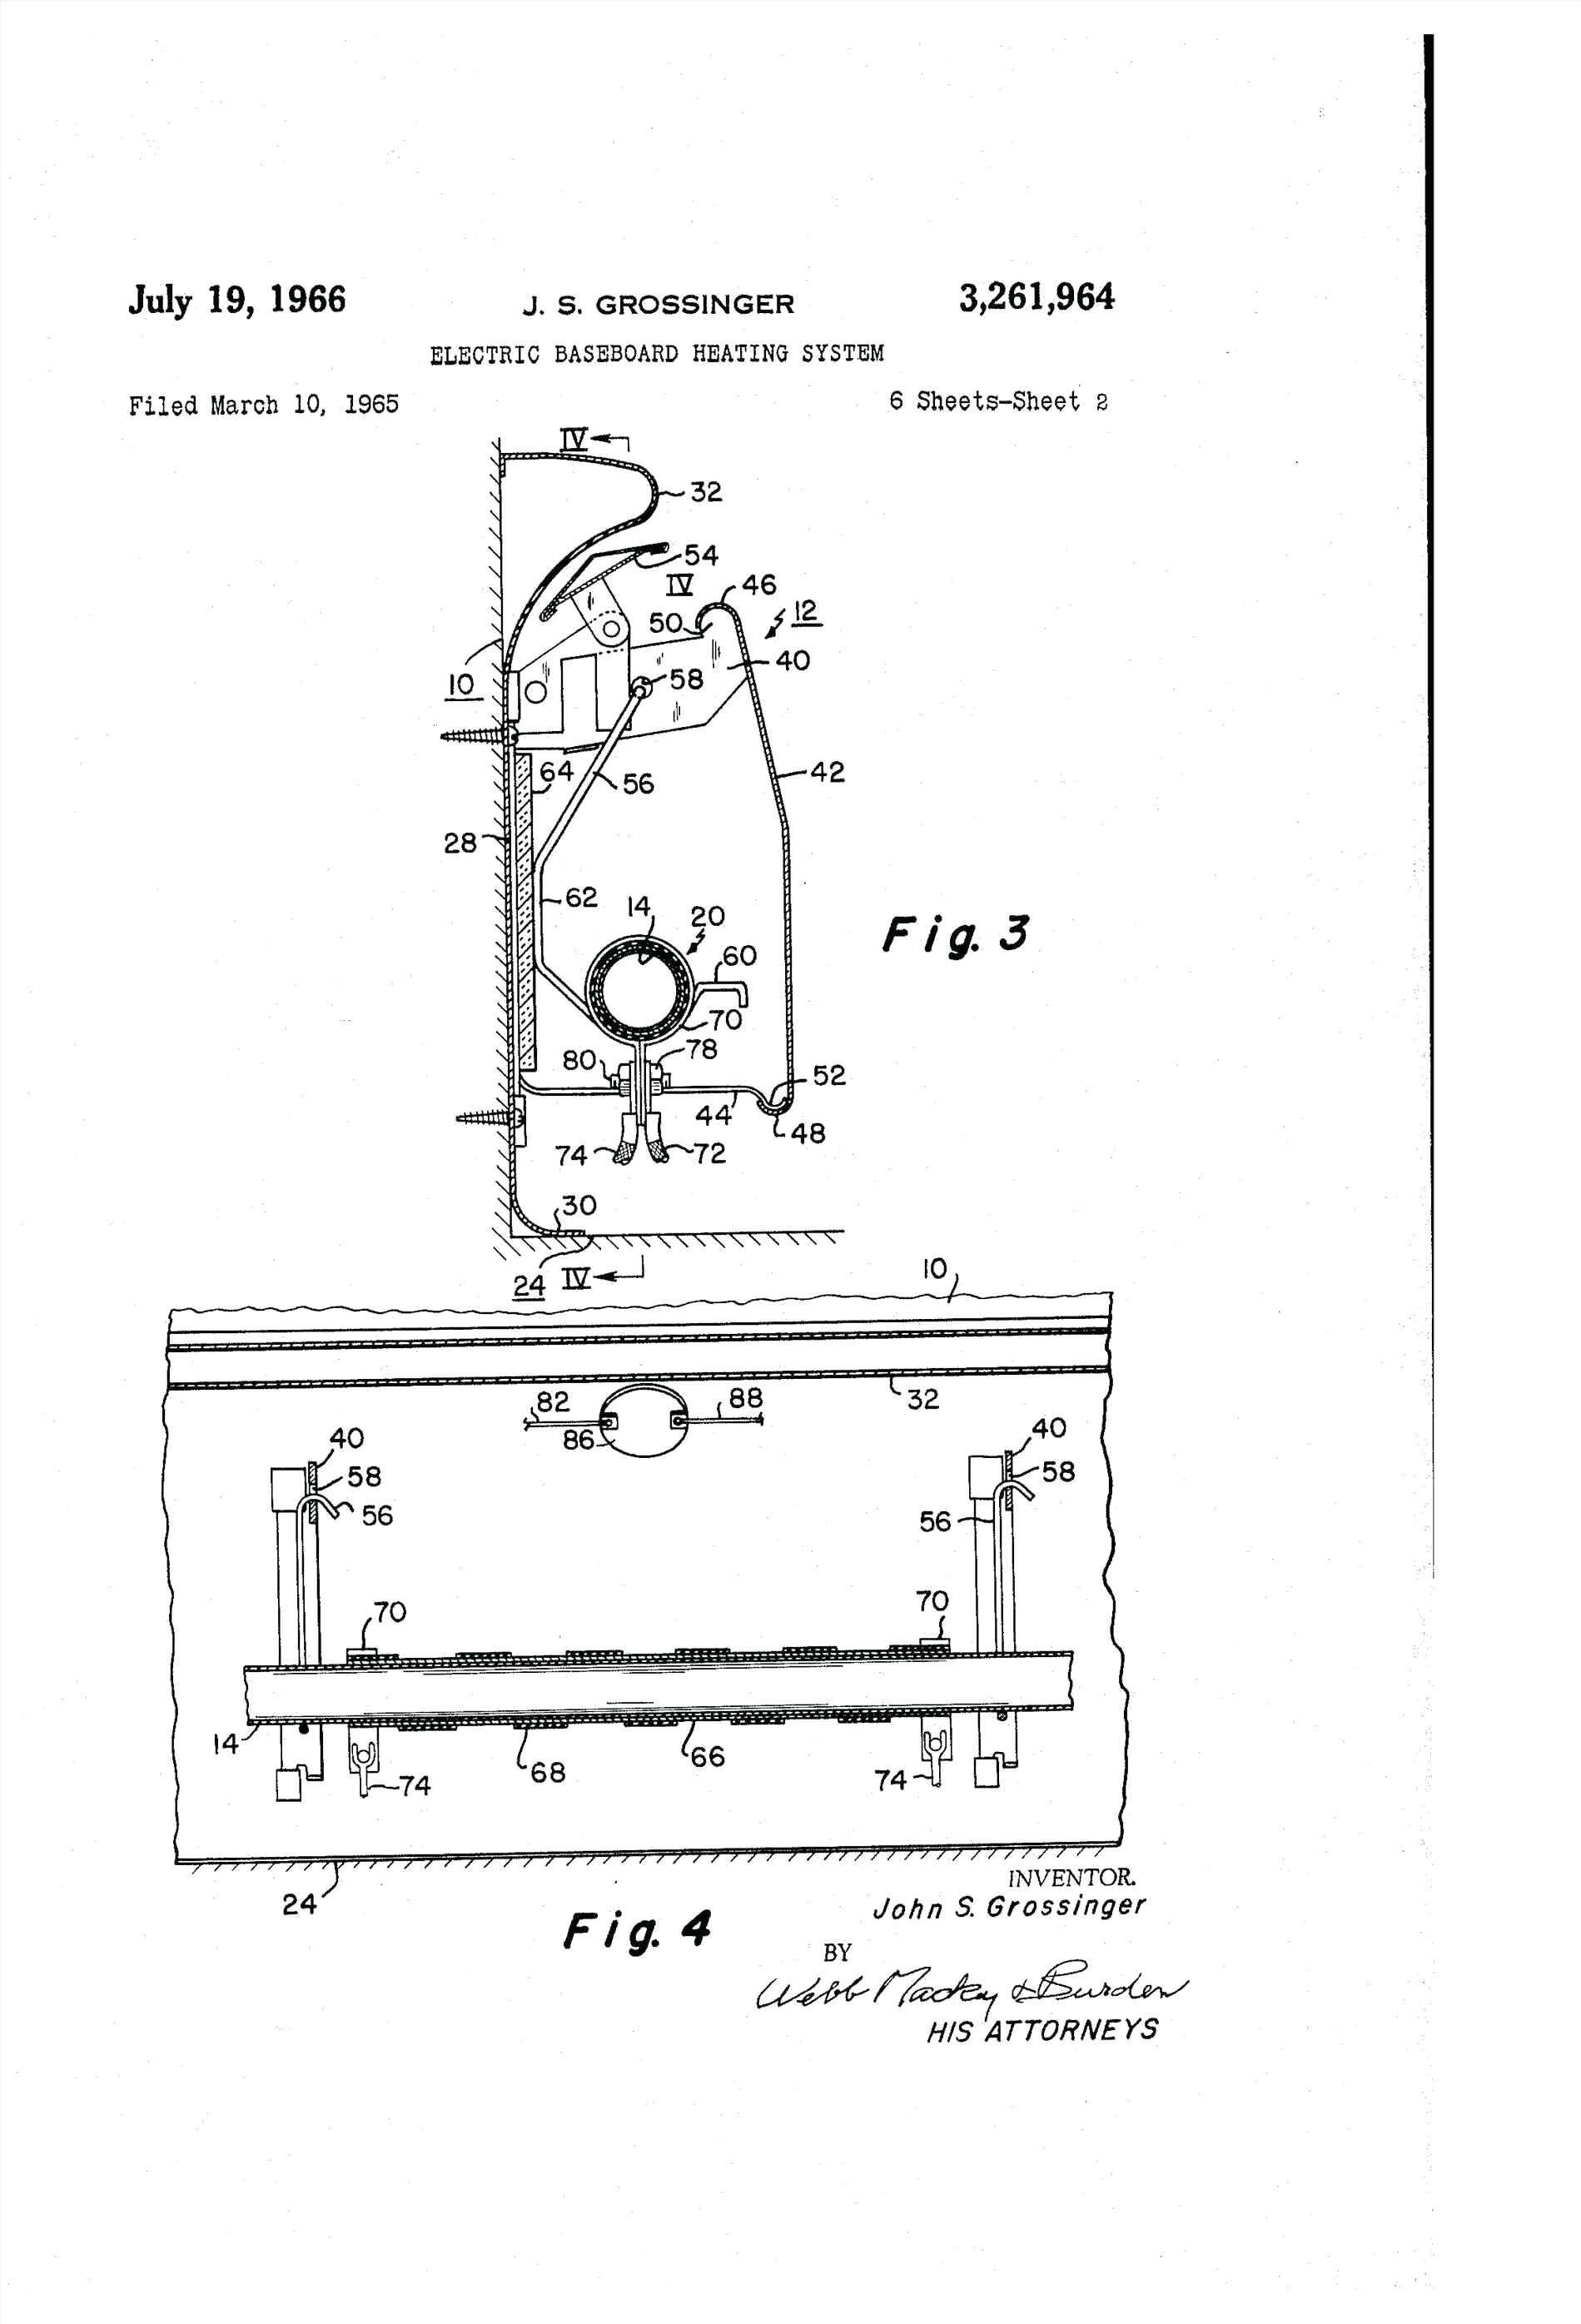 viper alarm 5305v wiring diagram from vehicle alarm system diagramviper alarm v wiring diagram from on [ 1899 x 2791 Pixel ]